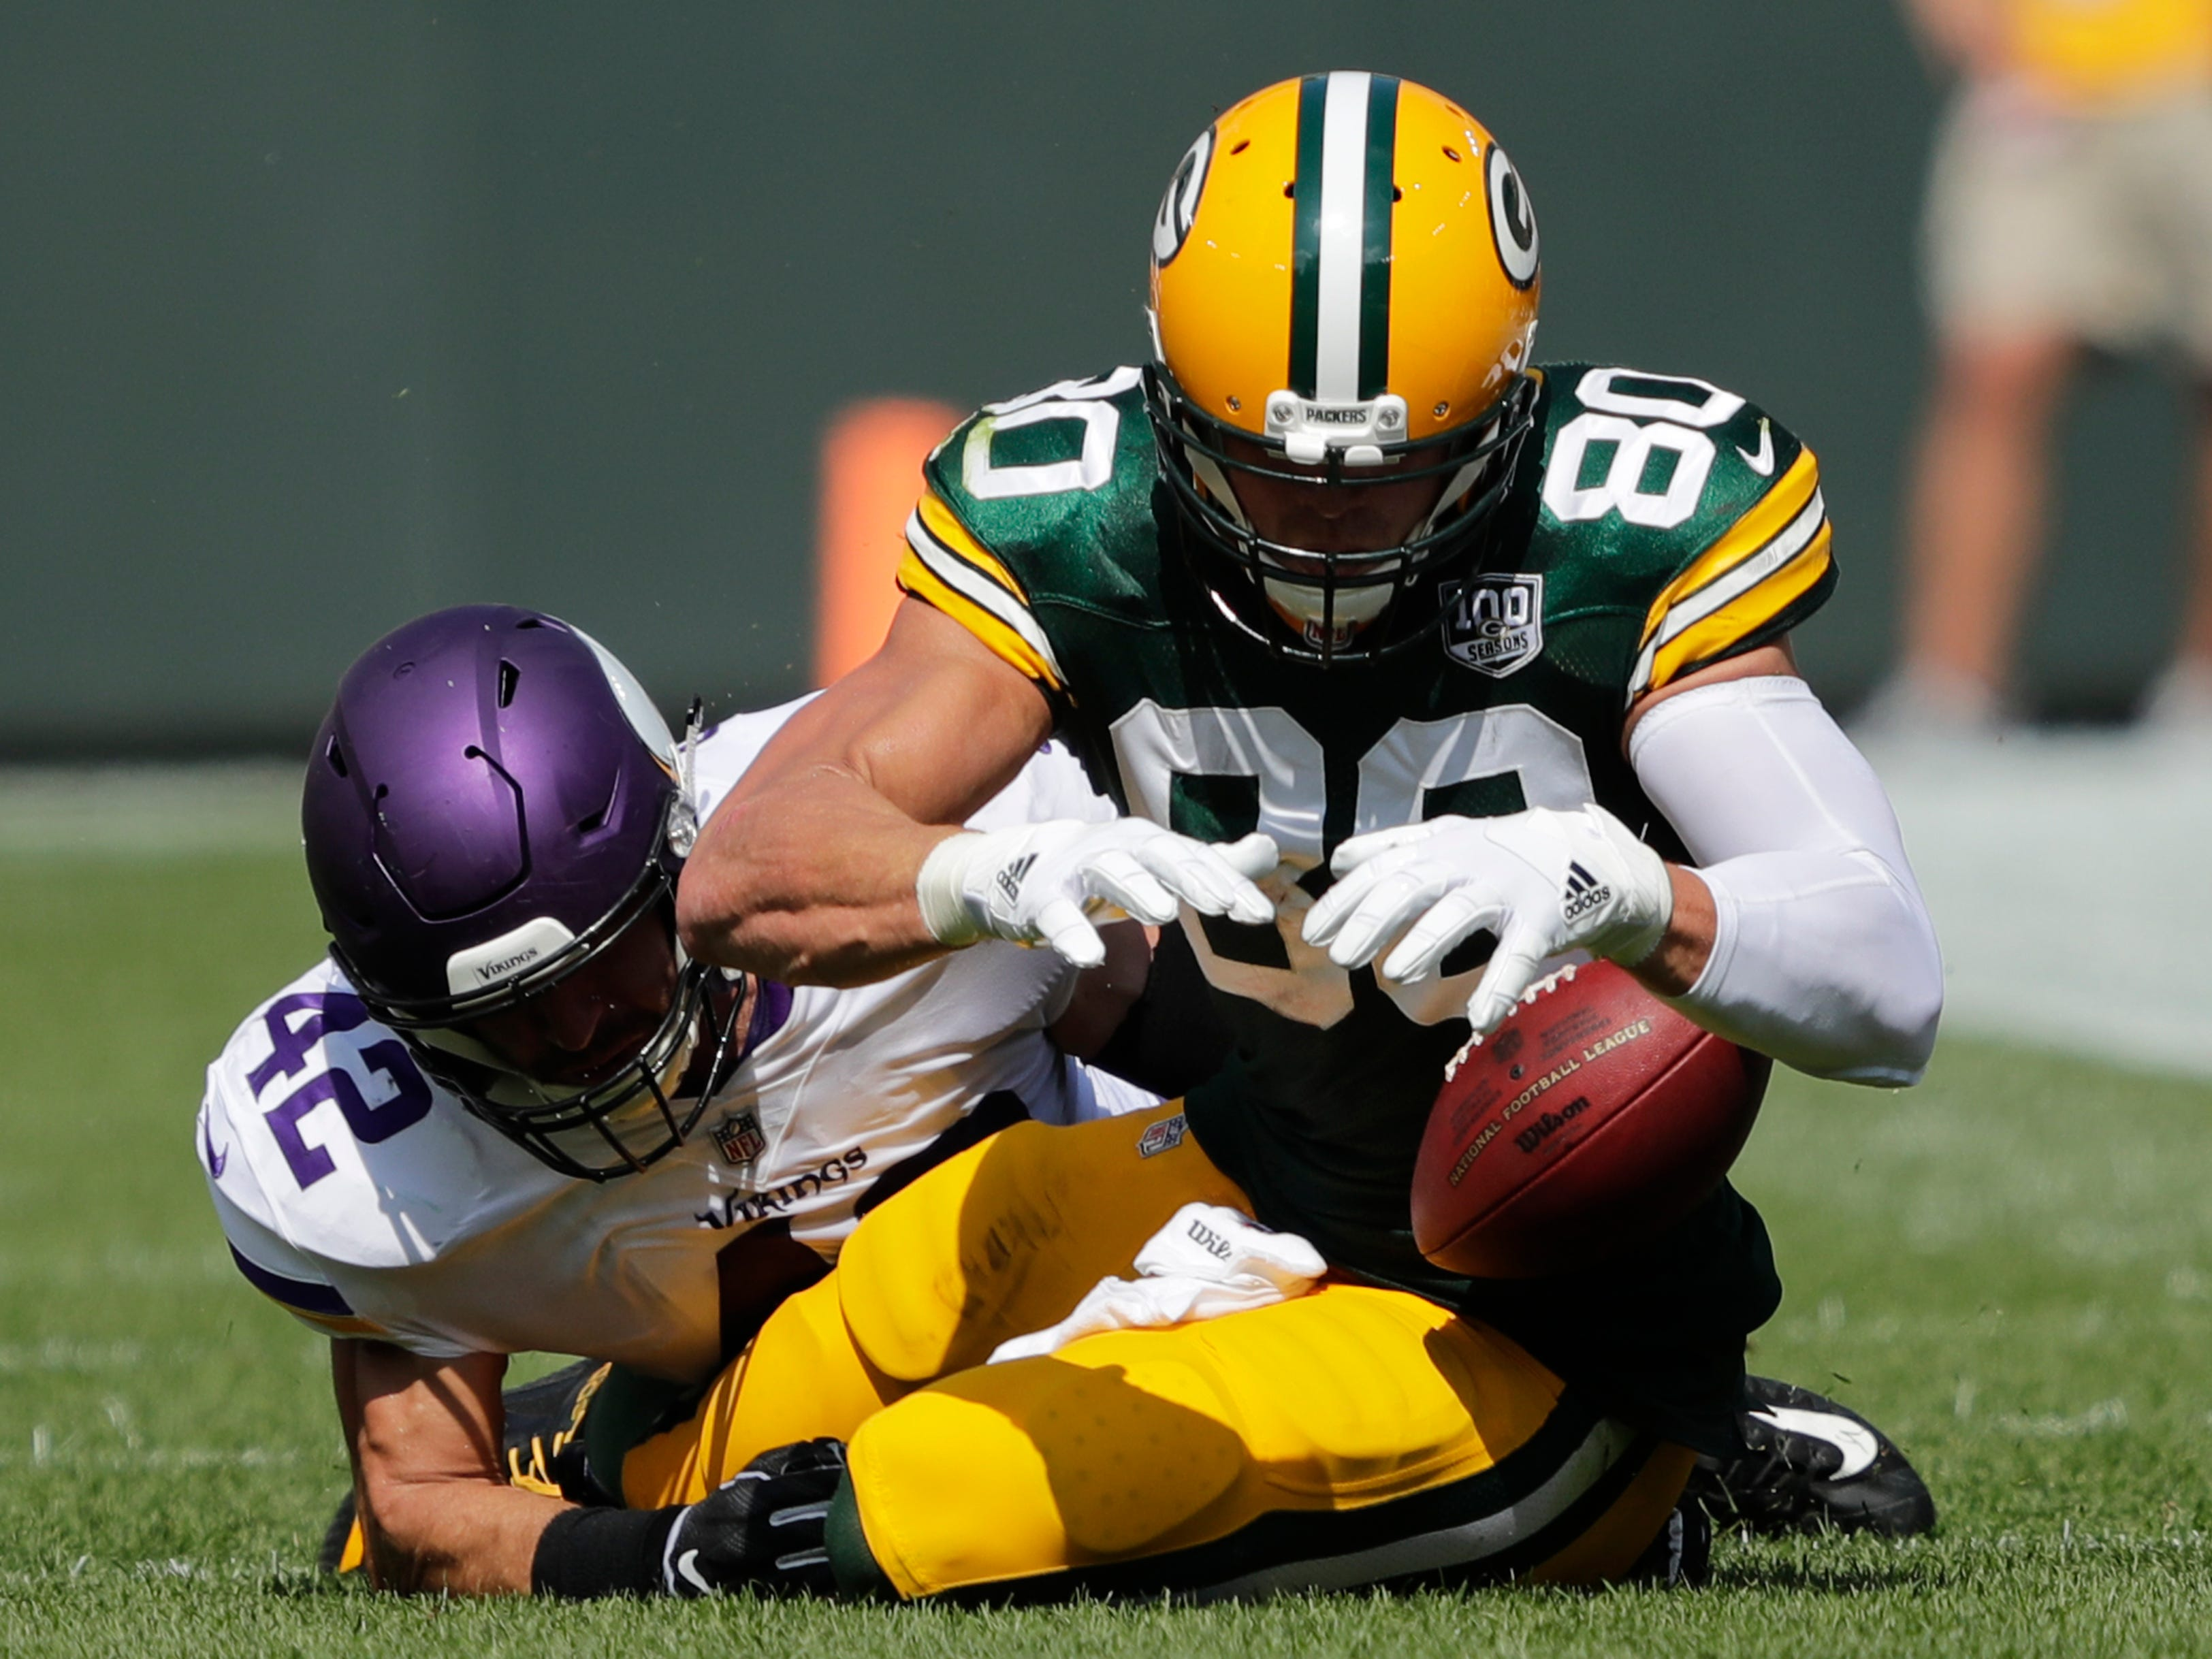 Green Bay Packers tight end Jimmy Graham (80) can't make a catch against Minnesota Vikings linebacker Ben Gedeon (42) in the second quarter during their football game Sunday, Sept. 16, 2018, at Lambeau Field in Green Bay, Wis.